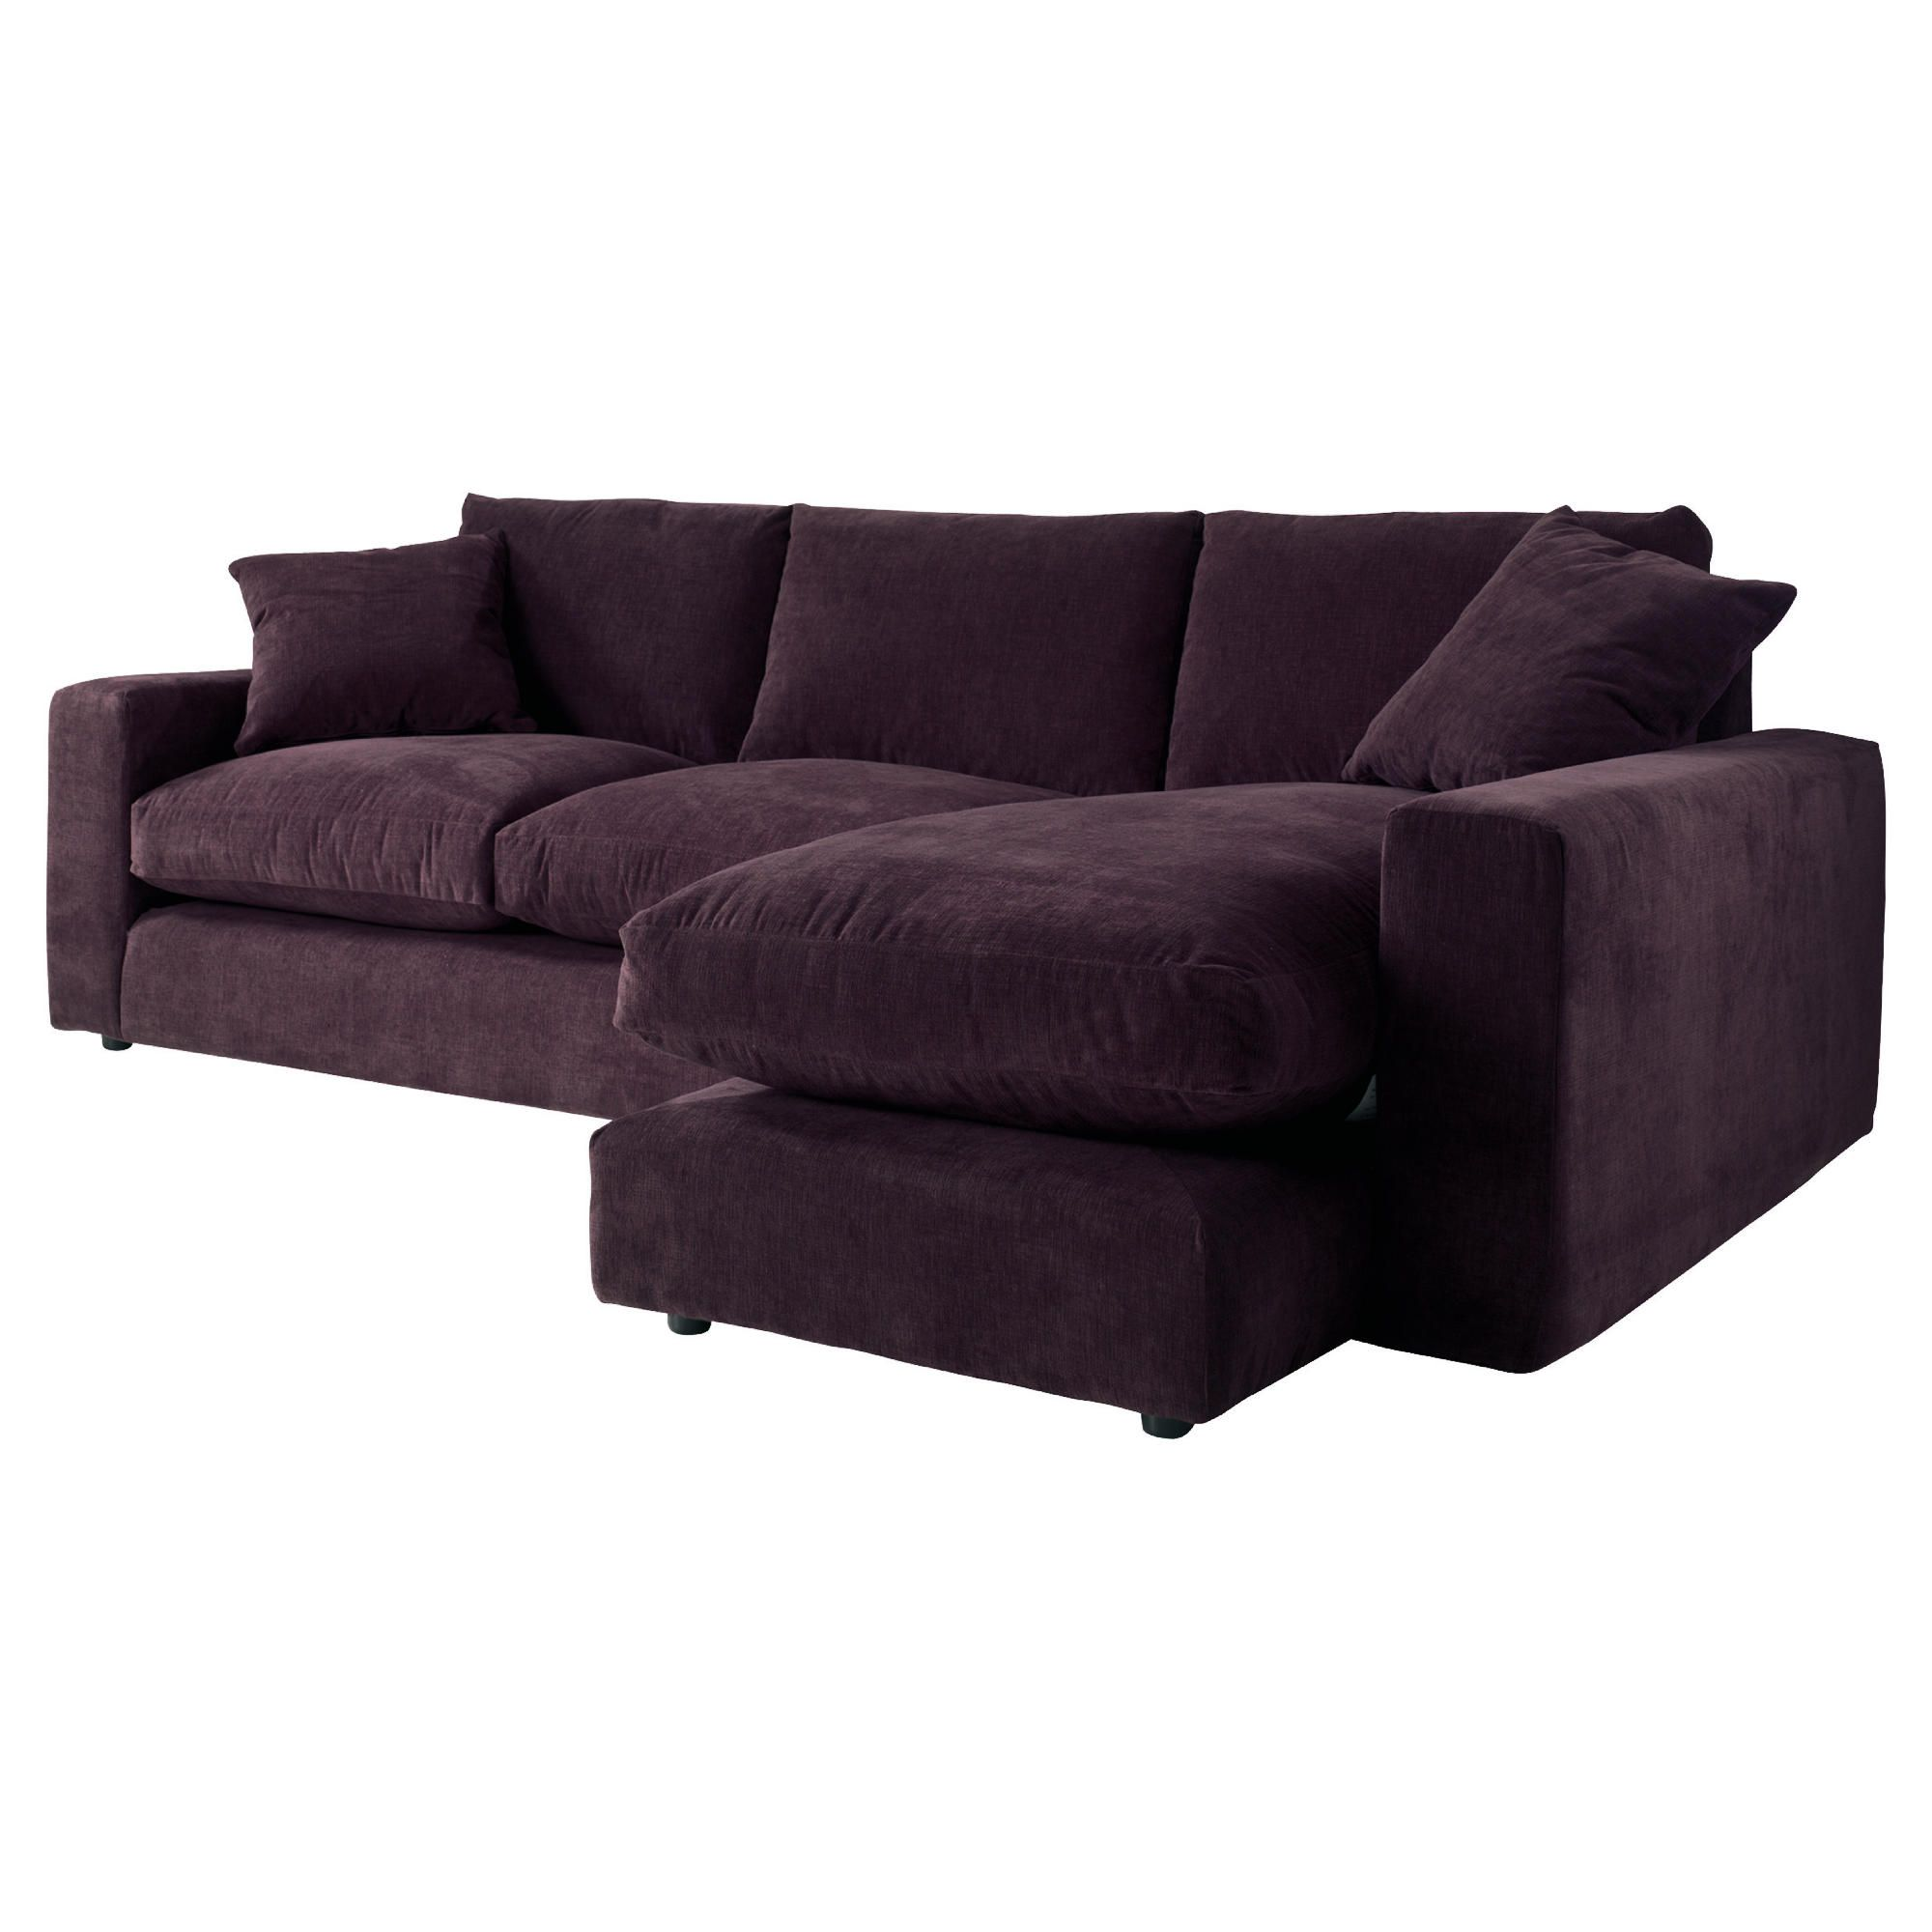 Valentino Right Hand Facingchaise Sofa, Plum at Tescos Direct